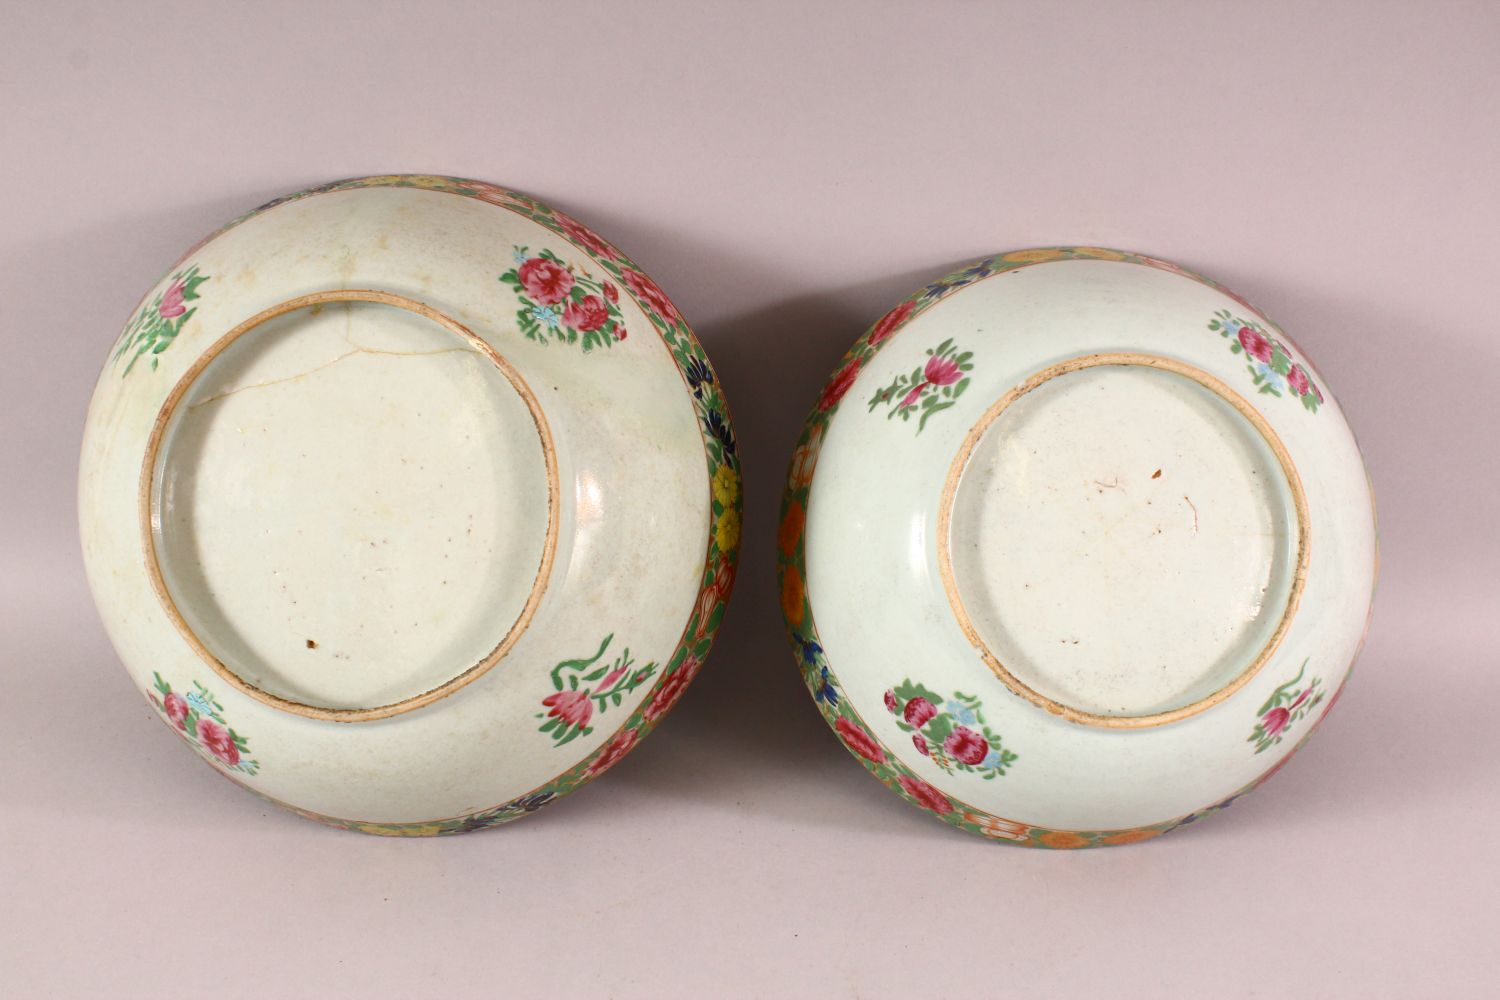 TWO 18TH / 19TH CENTURY CHINESE FAMILLE ROSE PORCELAIN BOWLS, each decorated with bands of flora, ( - Image 5 of 5